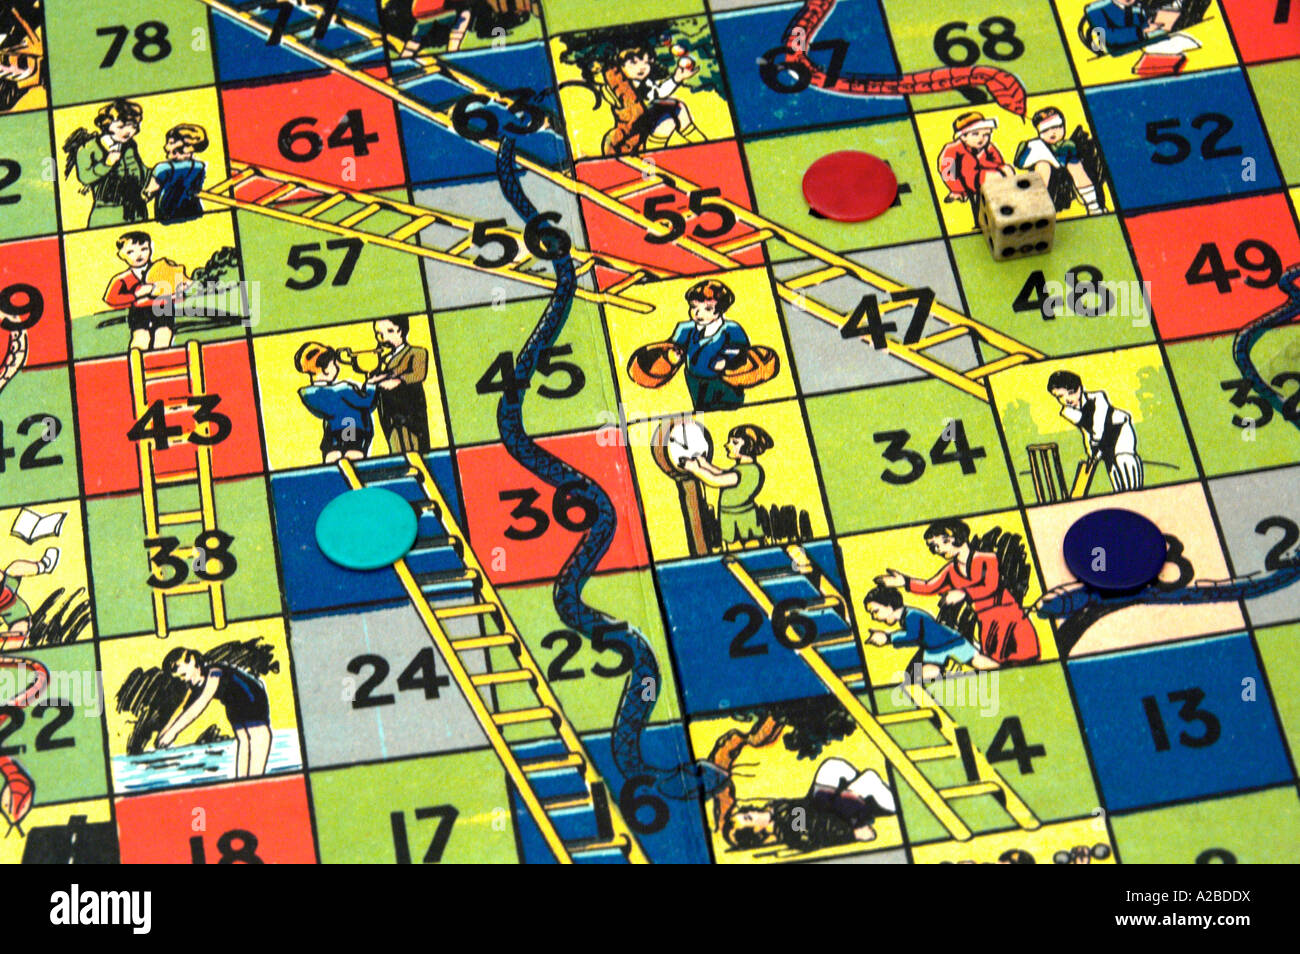 Tmg S Square Maze M E further S L also Bth Qp Snakes And Ladders together with Ct together with . on snakes ladders floor game